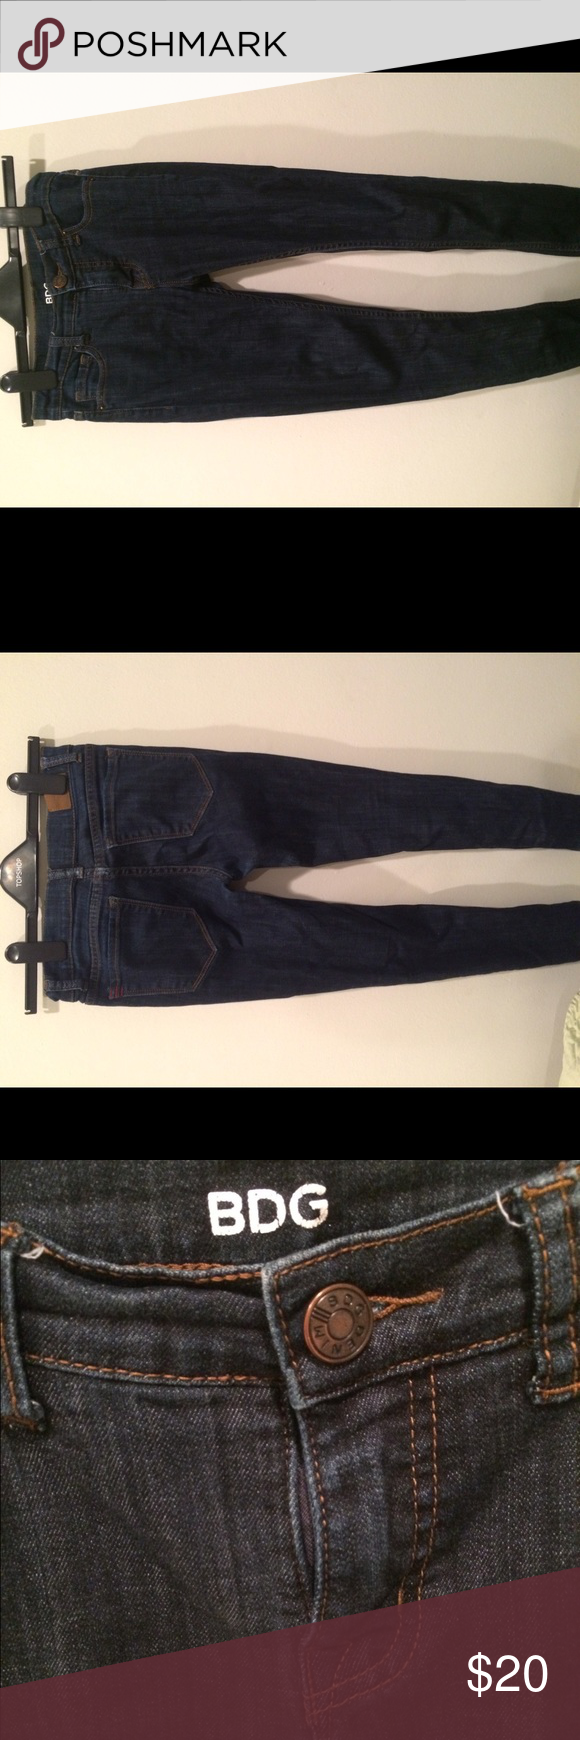 Urban Outfitters Skinny Jeans Mid rise twig style skinny jeans. Dark blue color Urban Outfitters Jeans Skinny